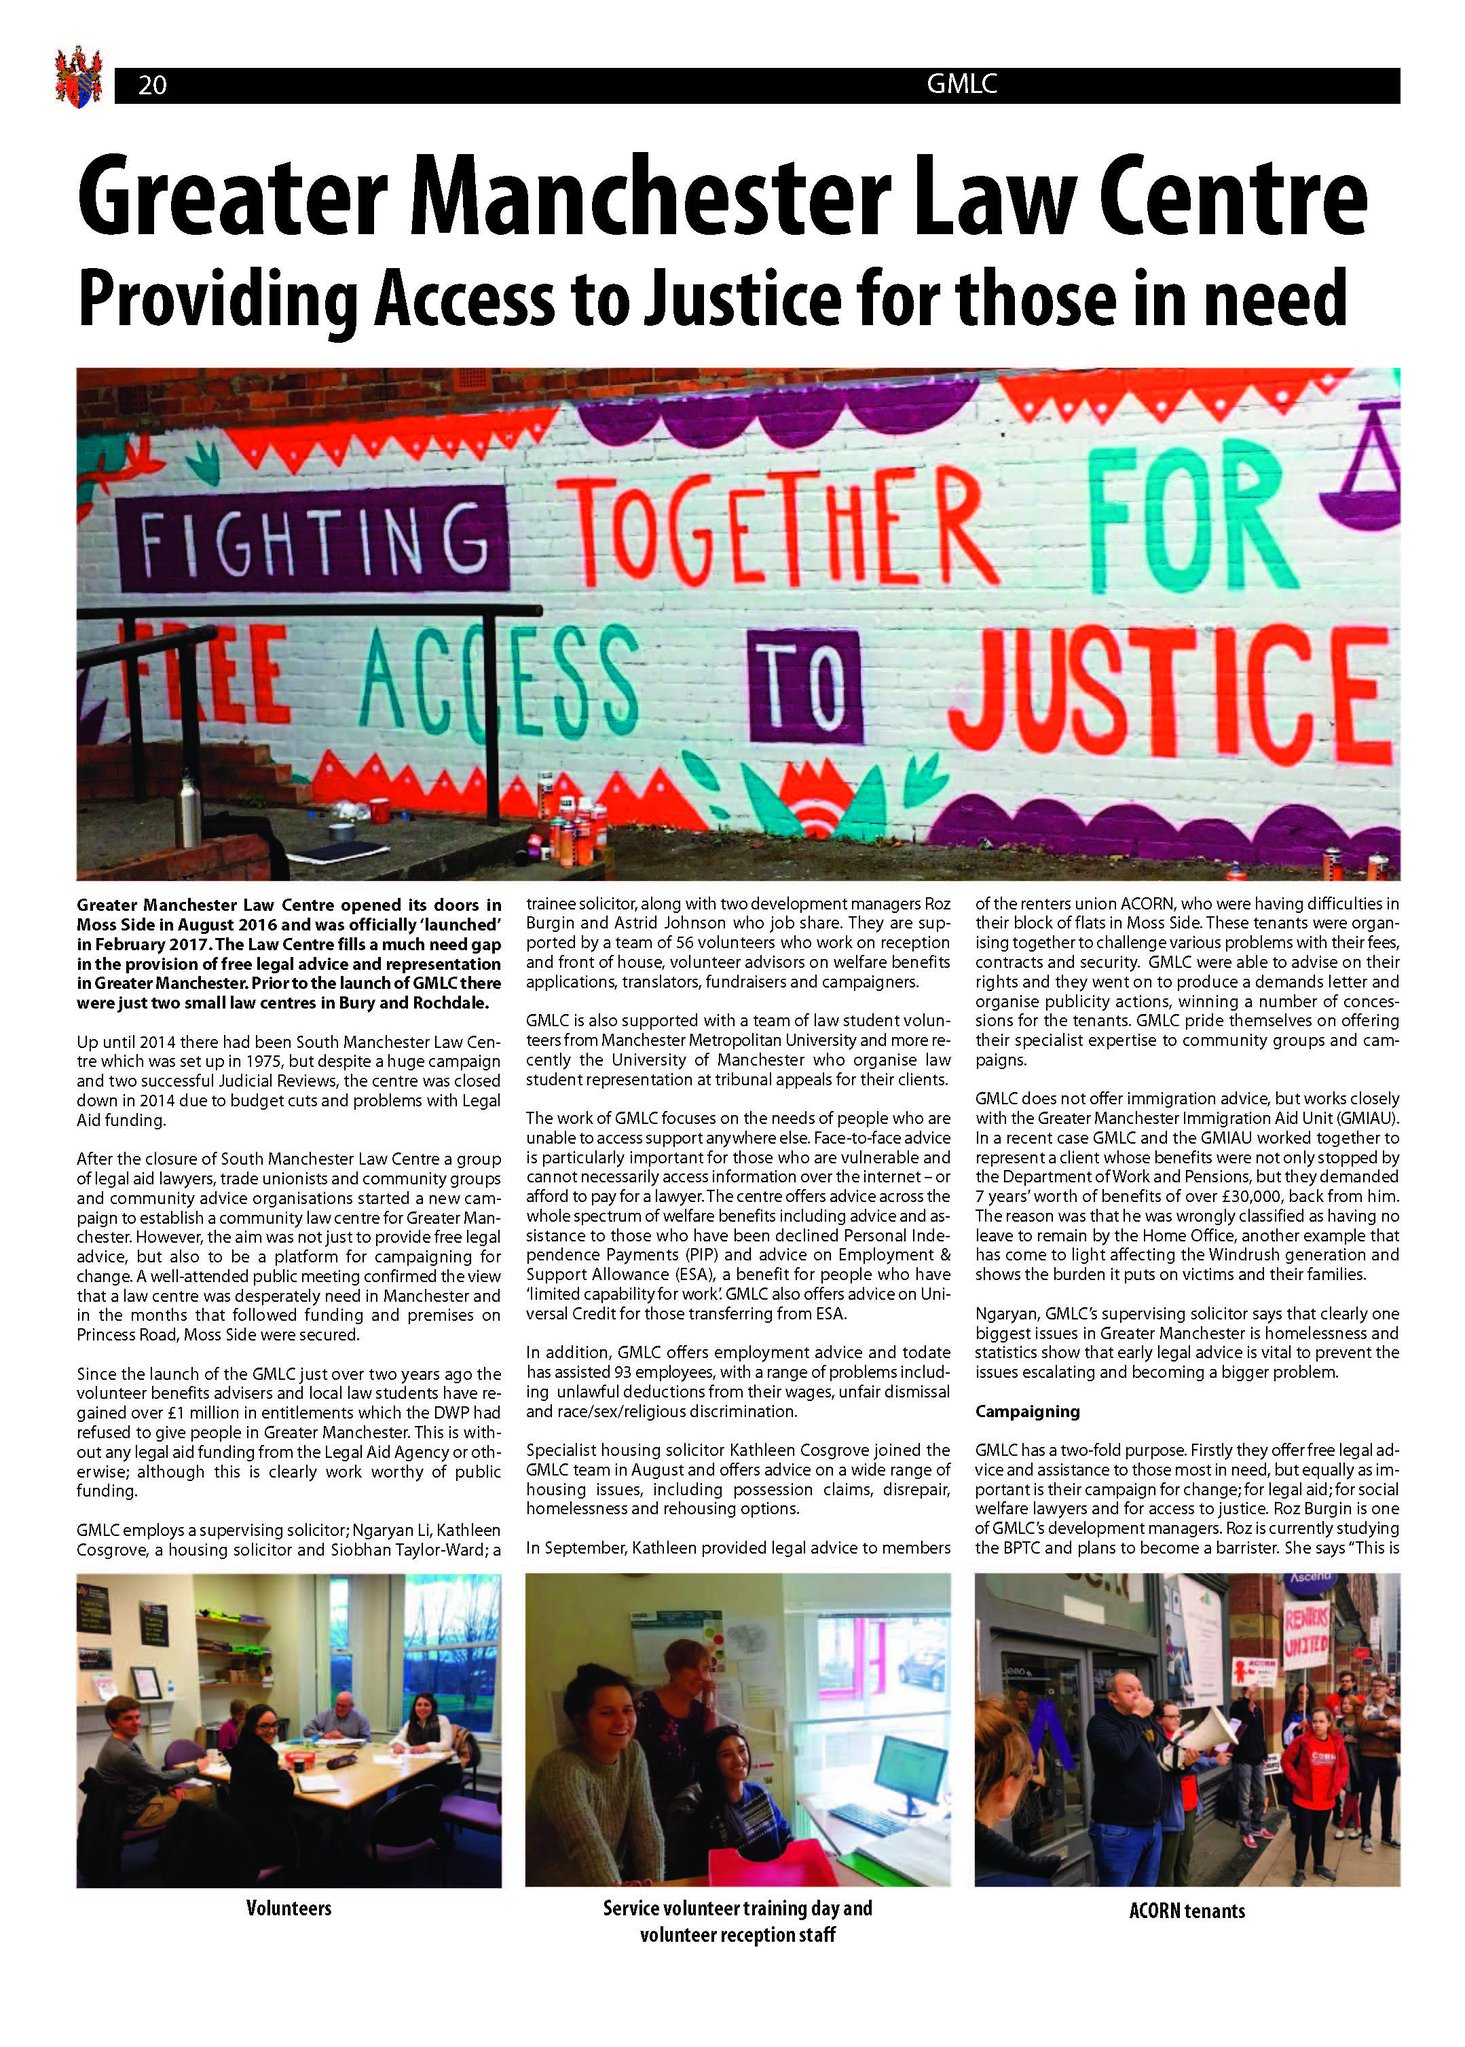 Article in Law Society Messenger